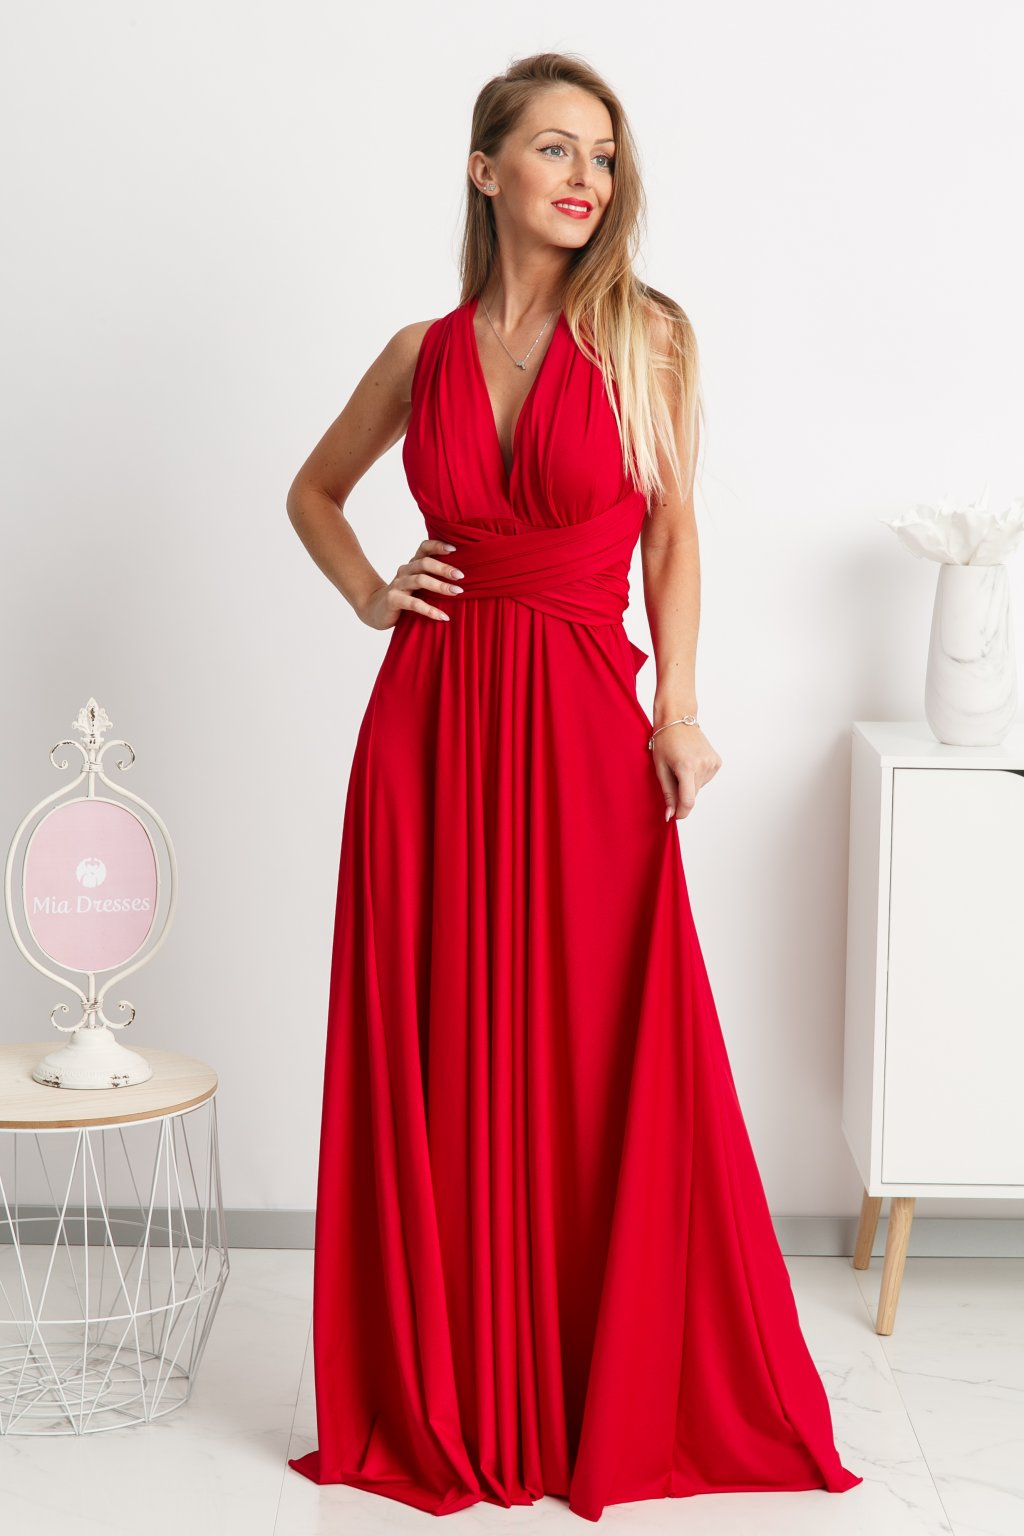 Red tie formal dress